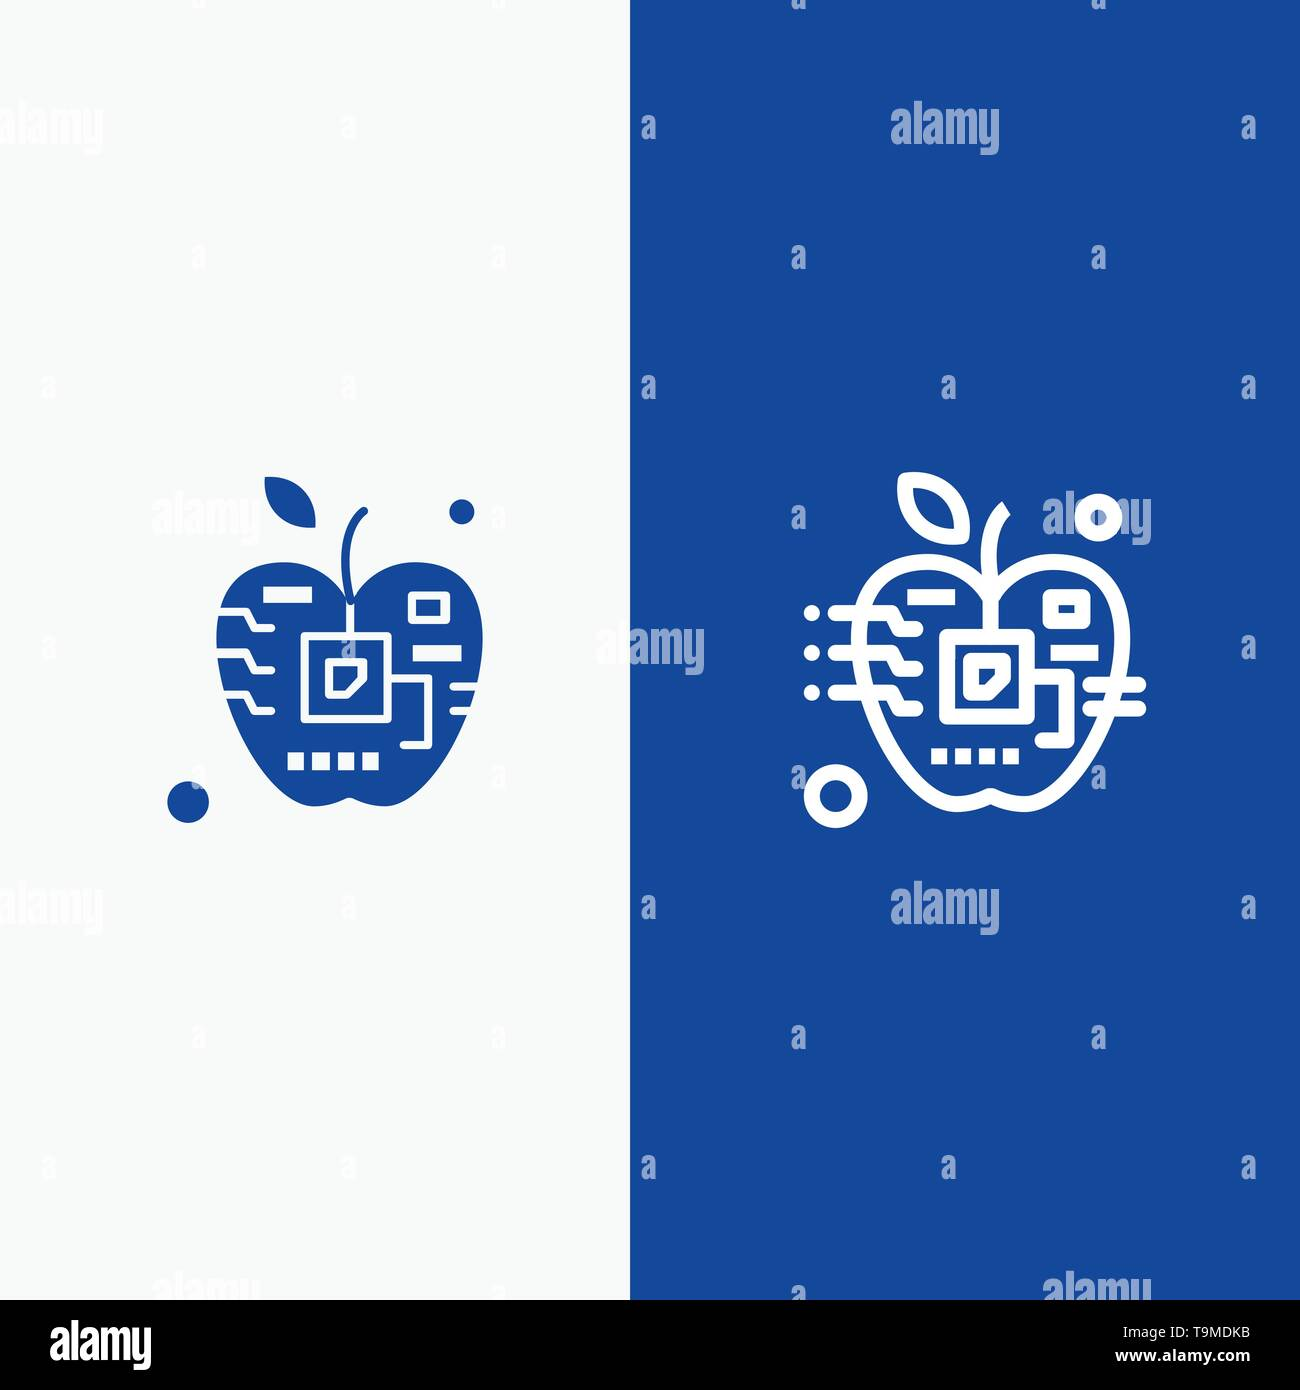 Apple, Artificial, Biology, Digital, Electronic Line and Glyph Solid icon Blue banner Line and Glyph Solid icon Blue banner - Stock Image